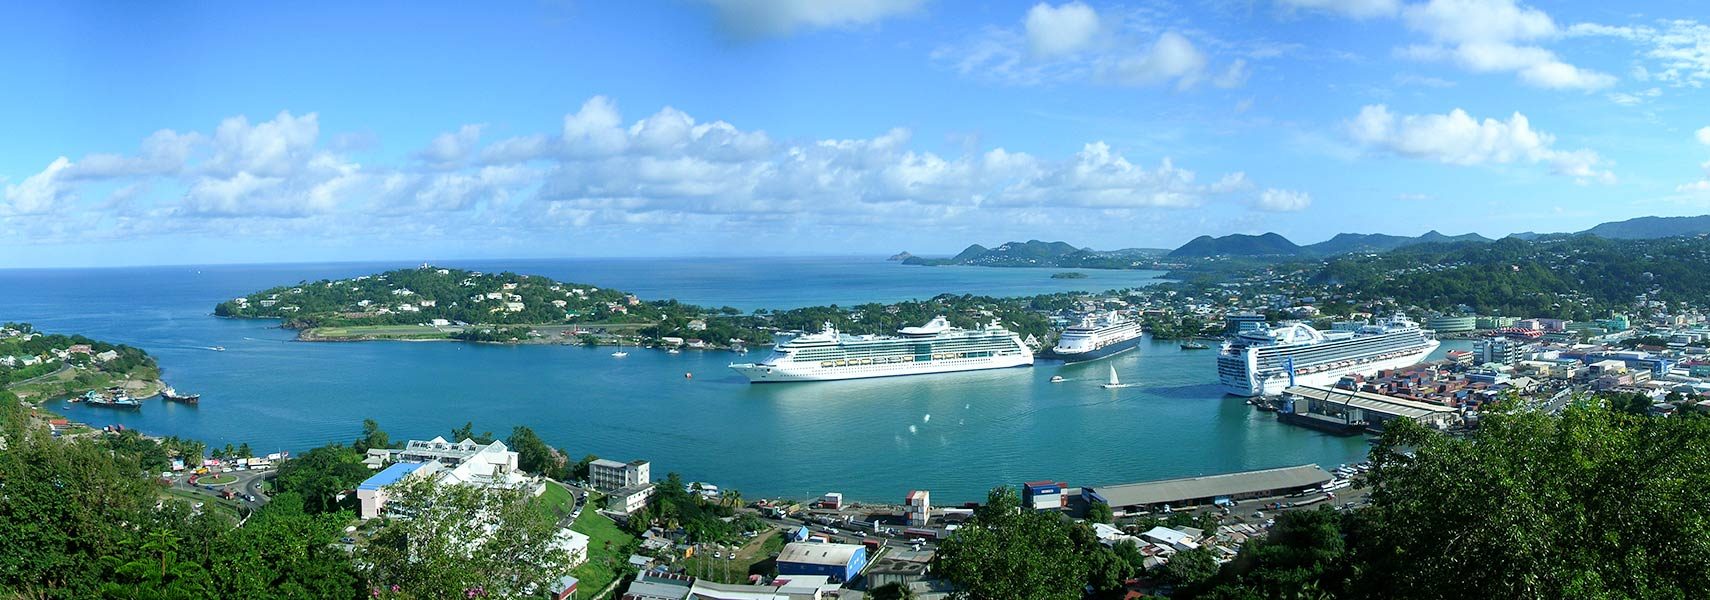 st lucia street map Google Map Of Castries Saint Lucia Nations Online Project st lucia street map